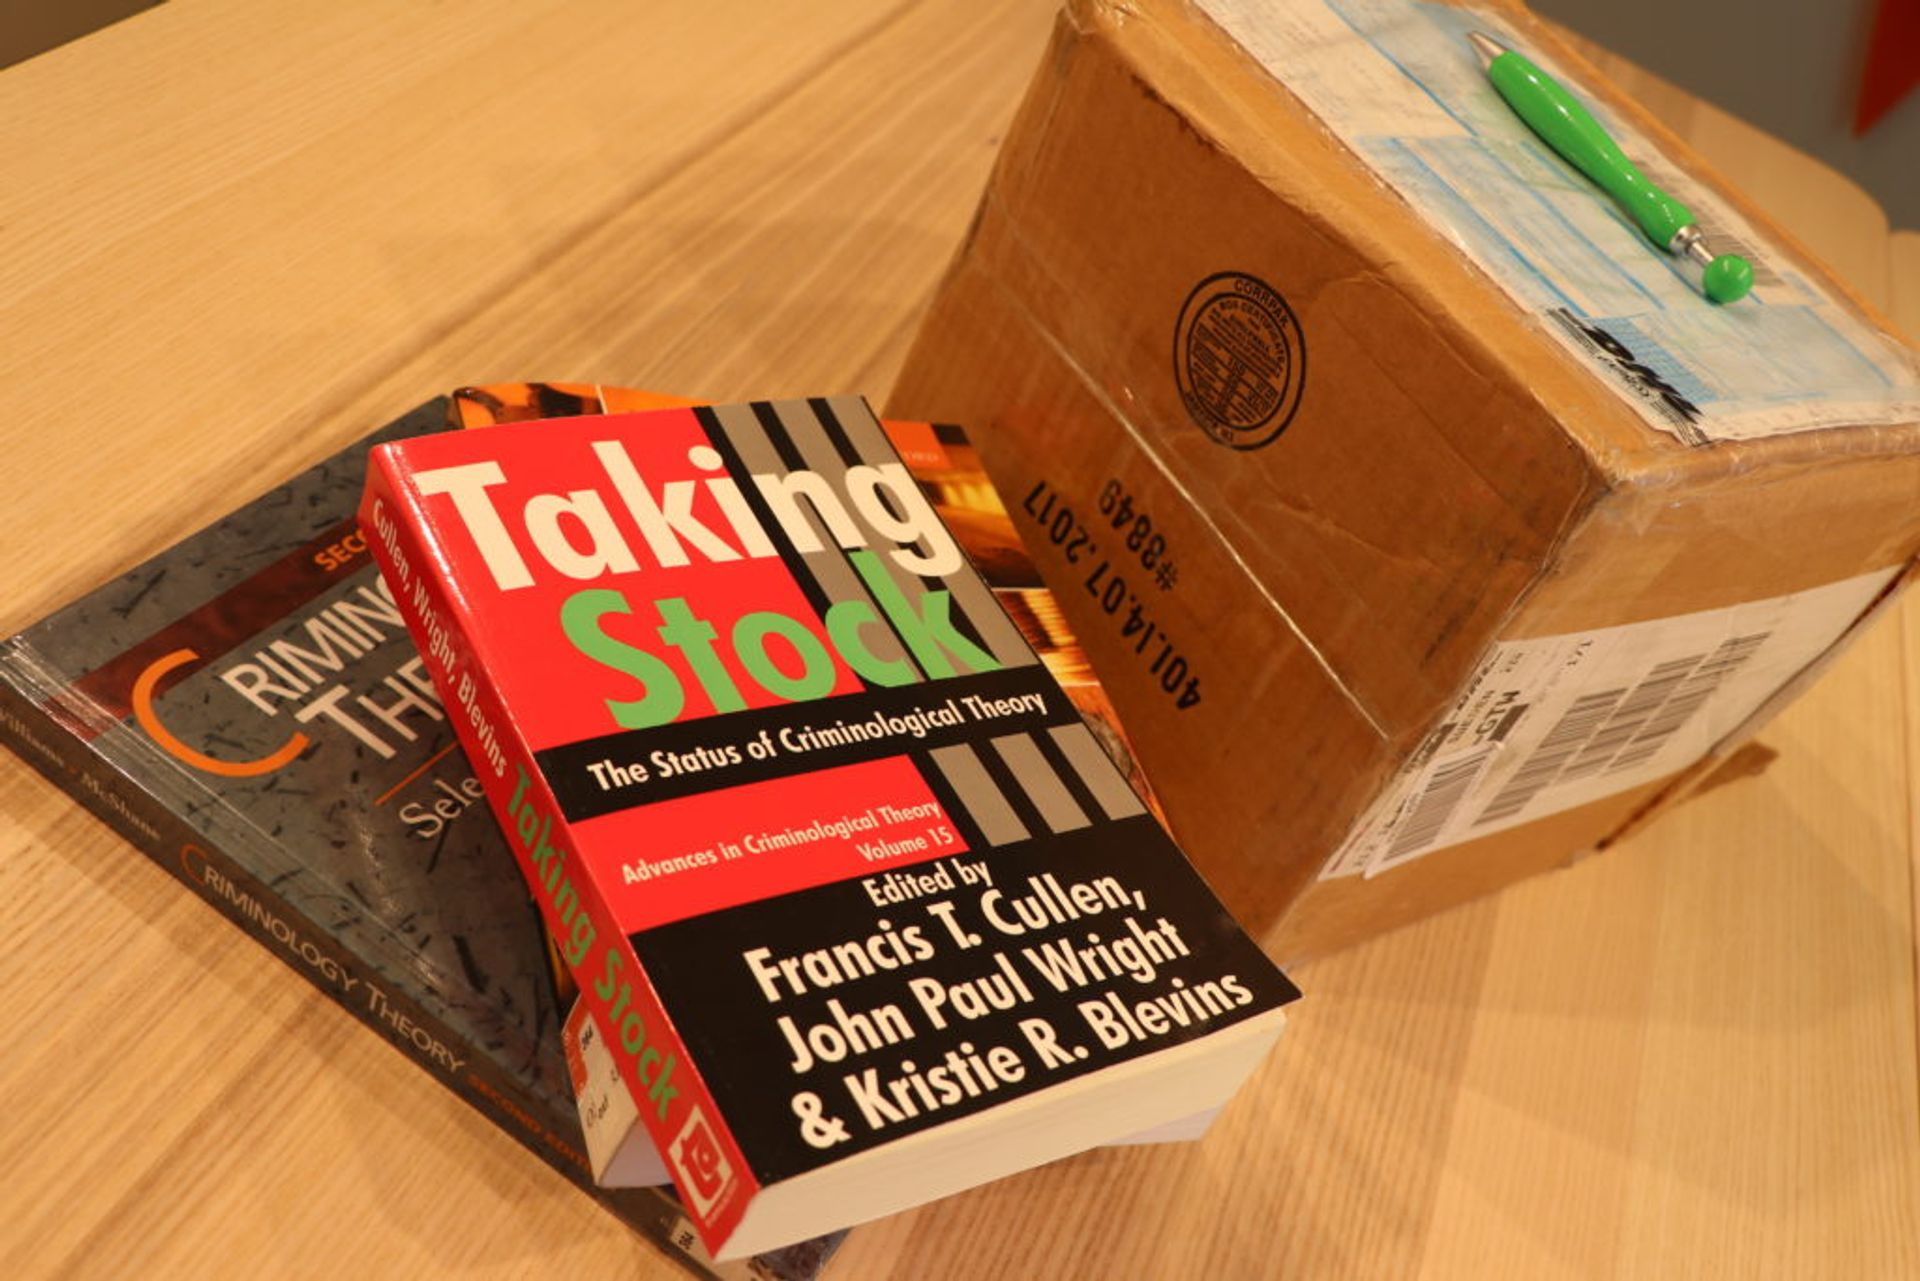 Shipping books and other heavy material is highly recommended /Source: Sanjay